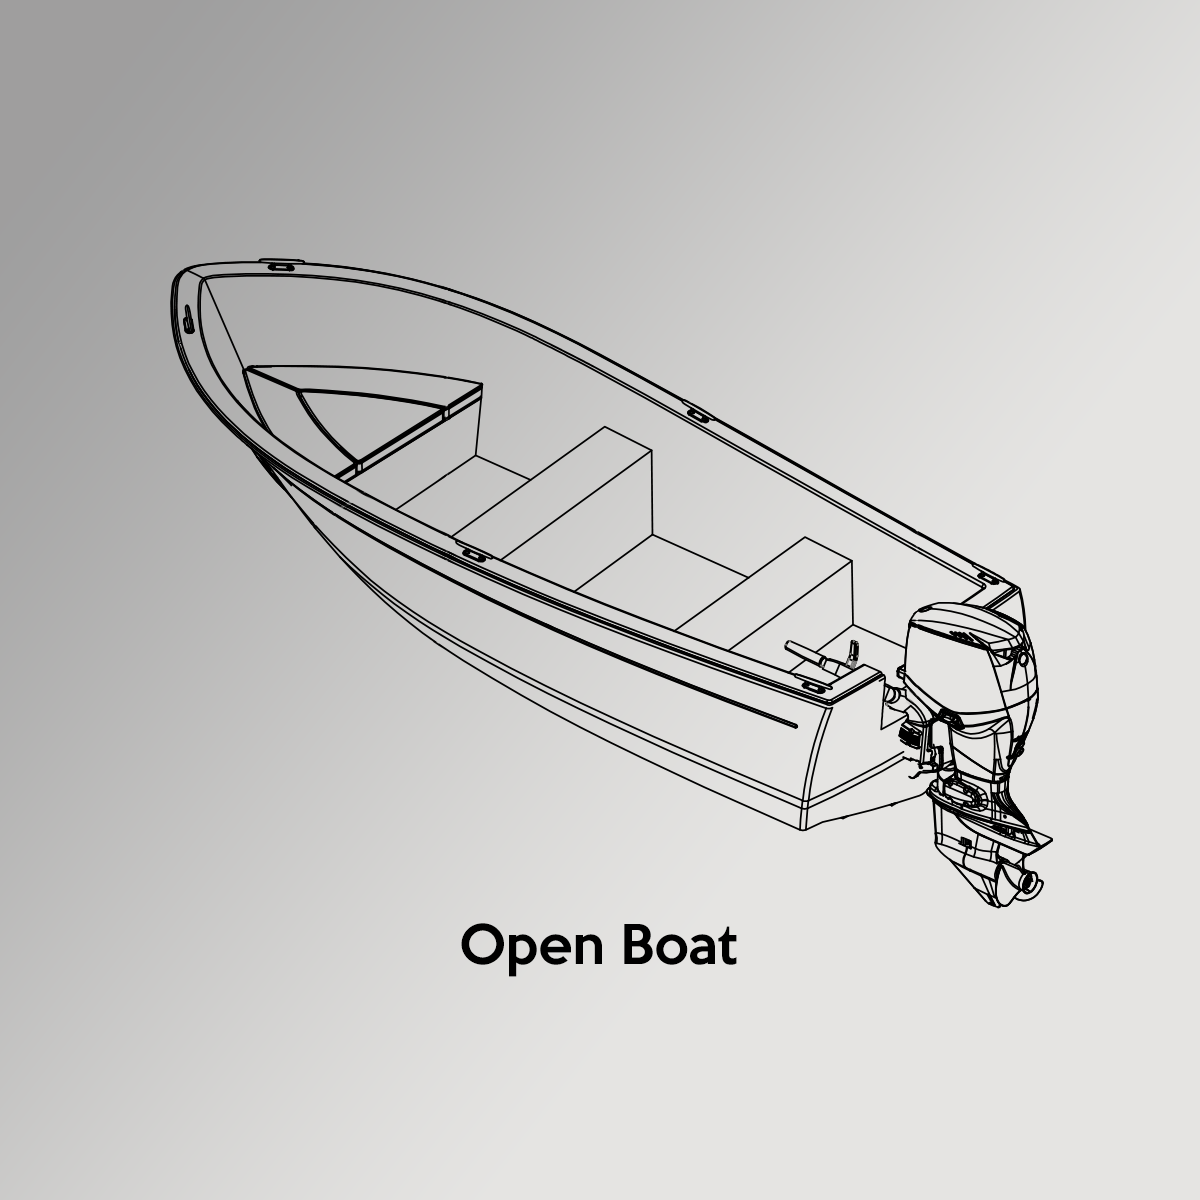 Open Boat Drawing